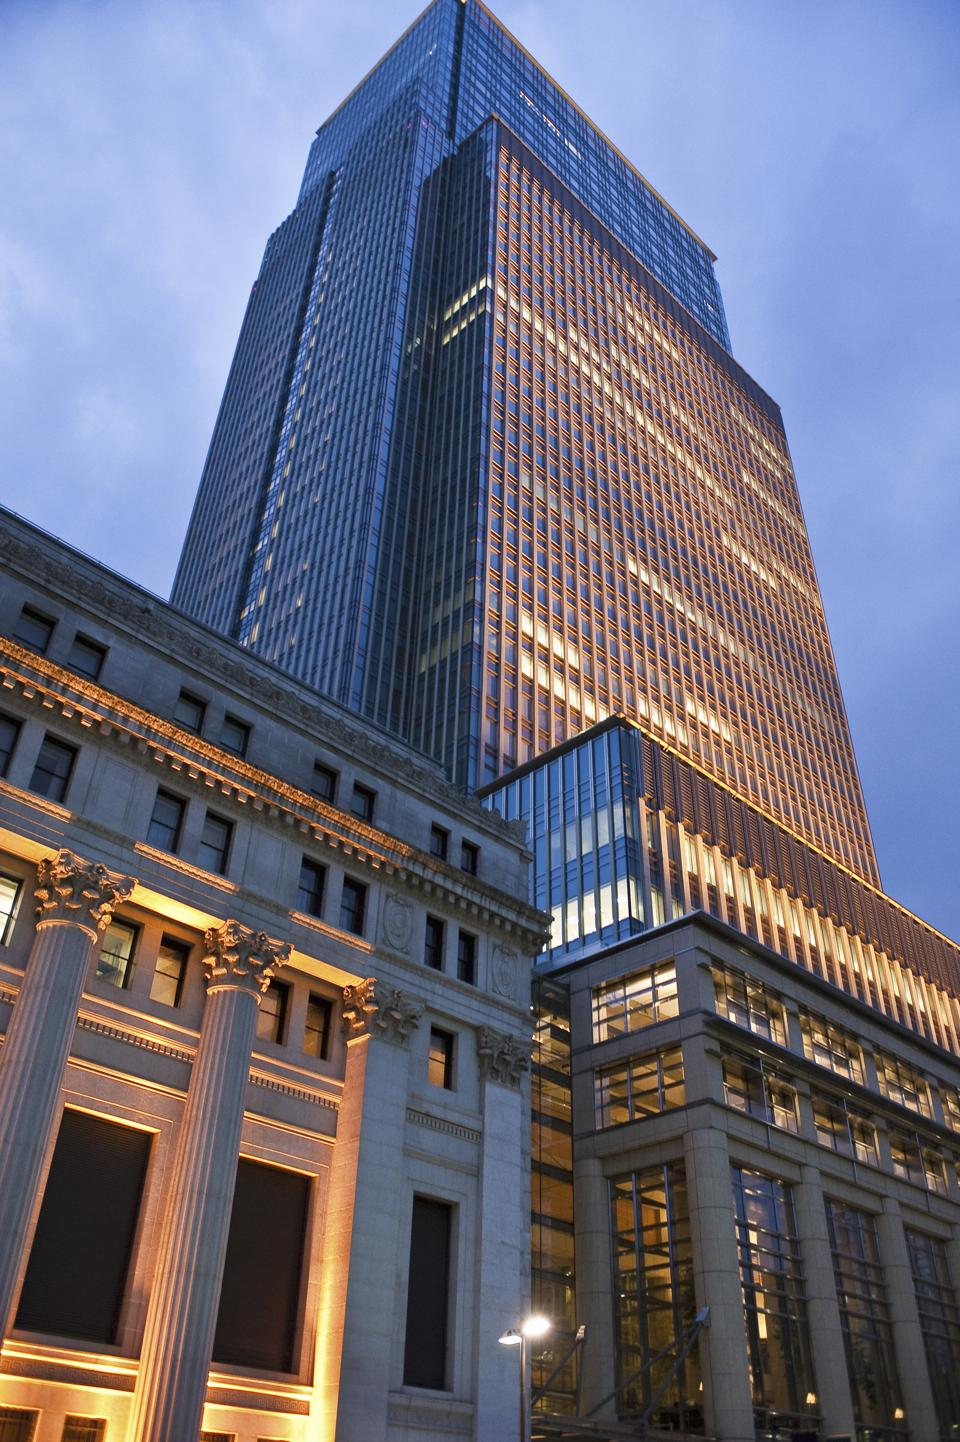 Nihonbashi Mitsui Tower in Tokyo hosts the family history museum of the 300 year old Mitsui family